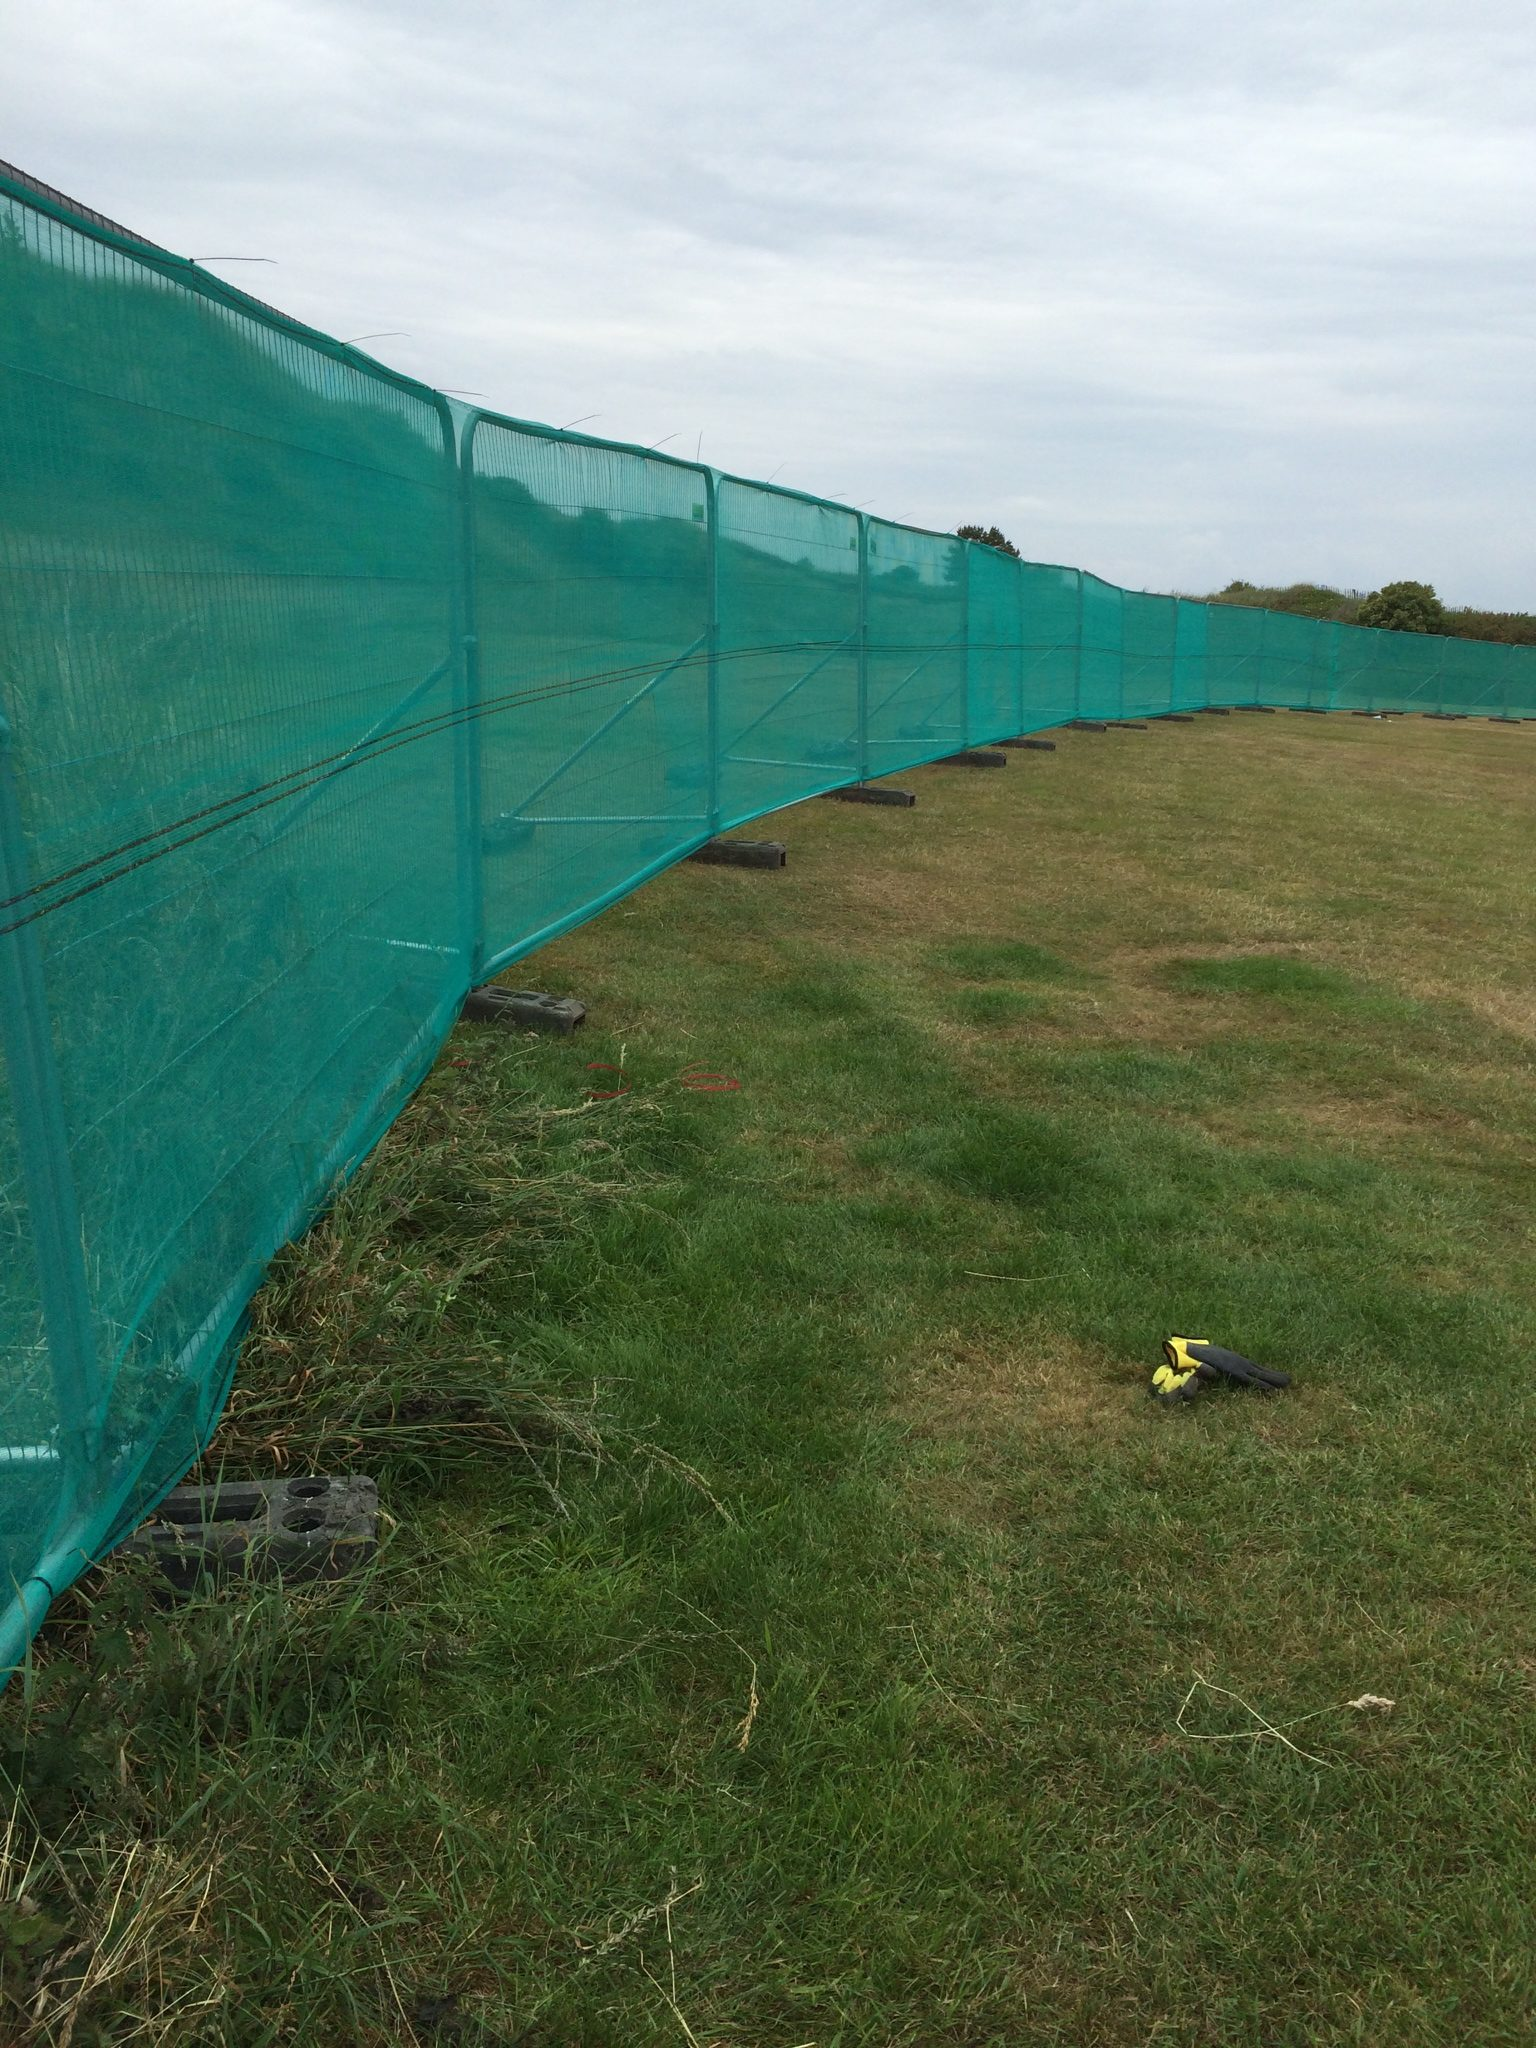 Fencing with Netting